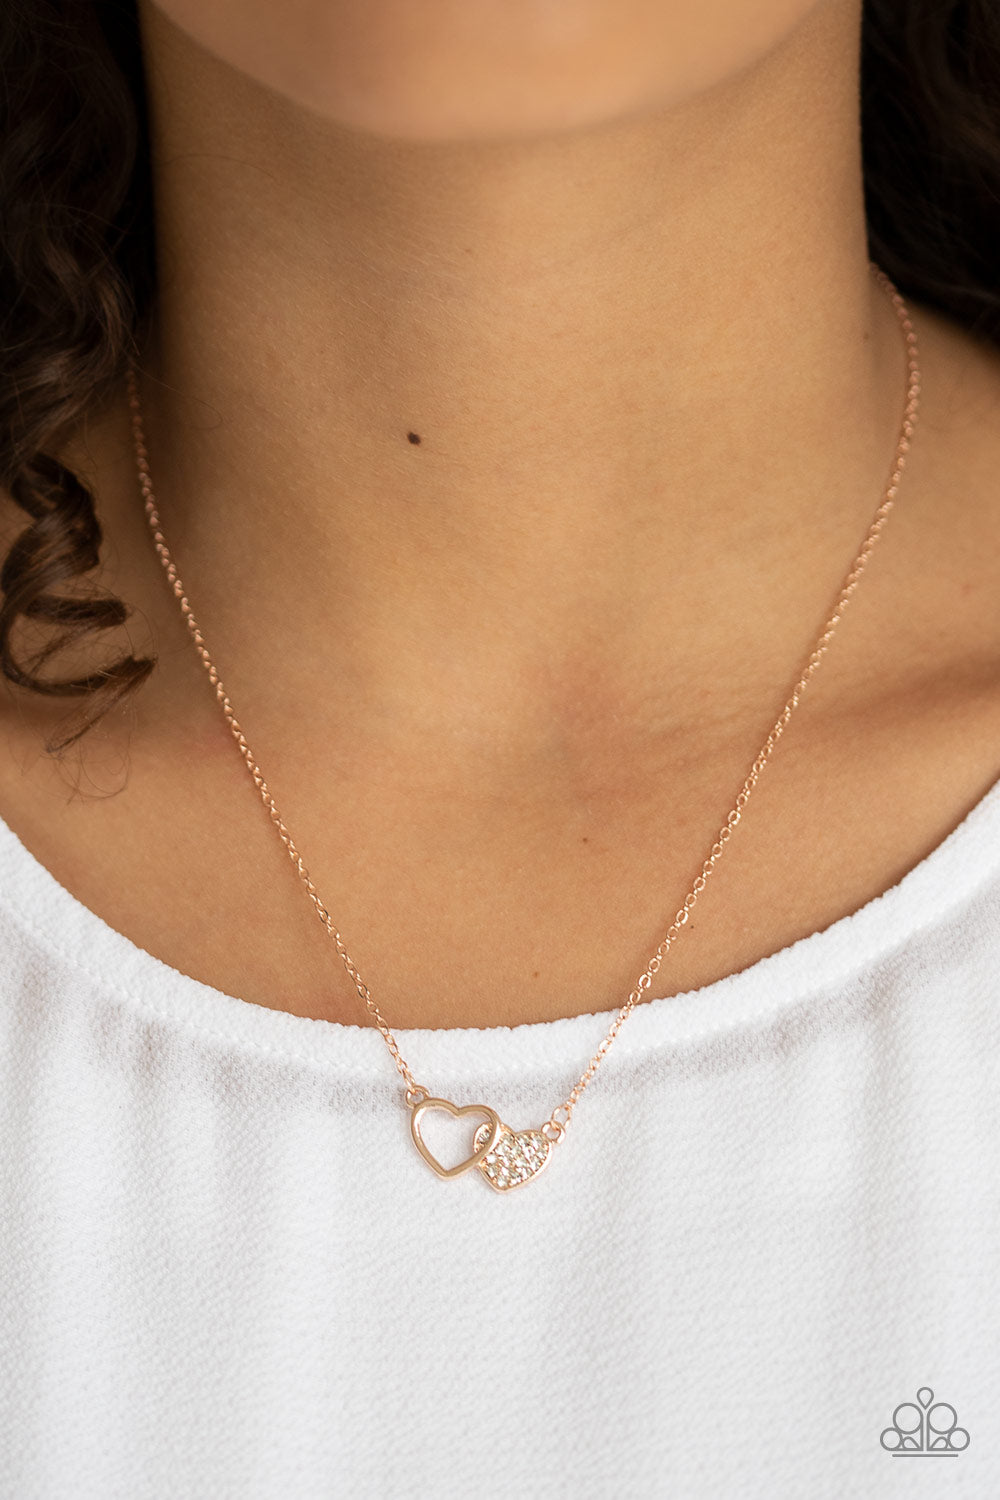 Charming Couple Necklace Rose Gold Heart